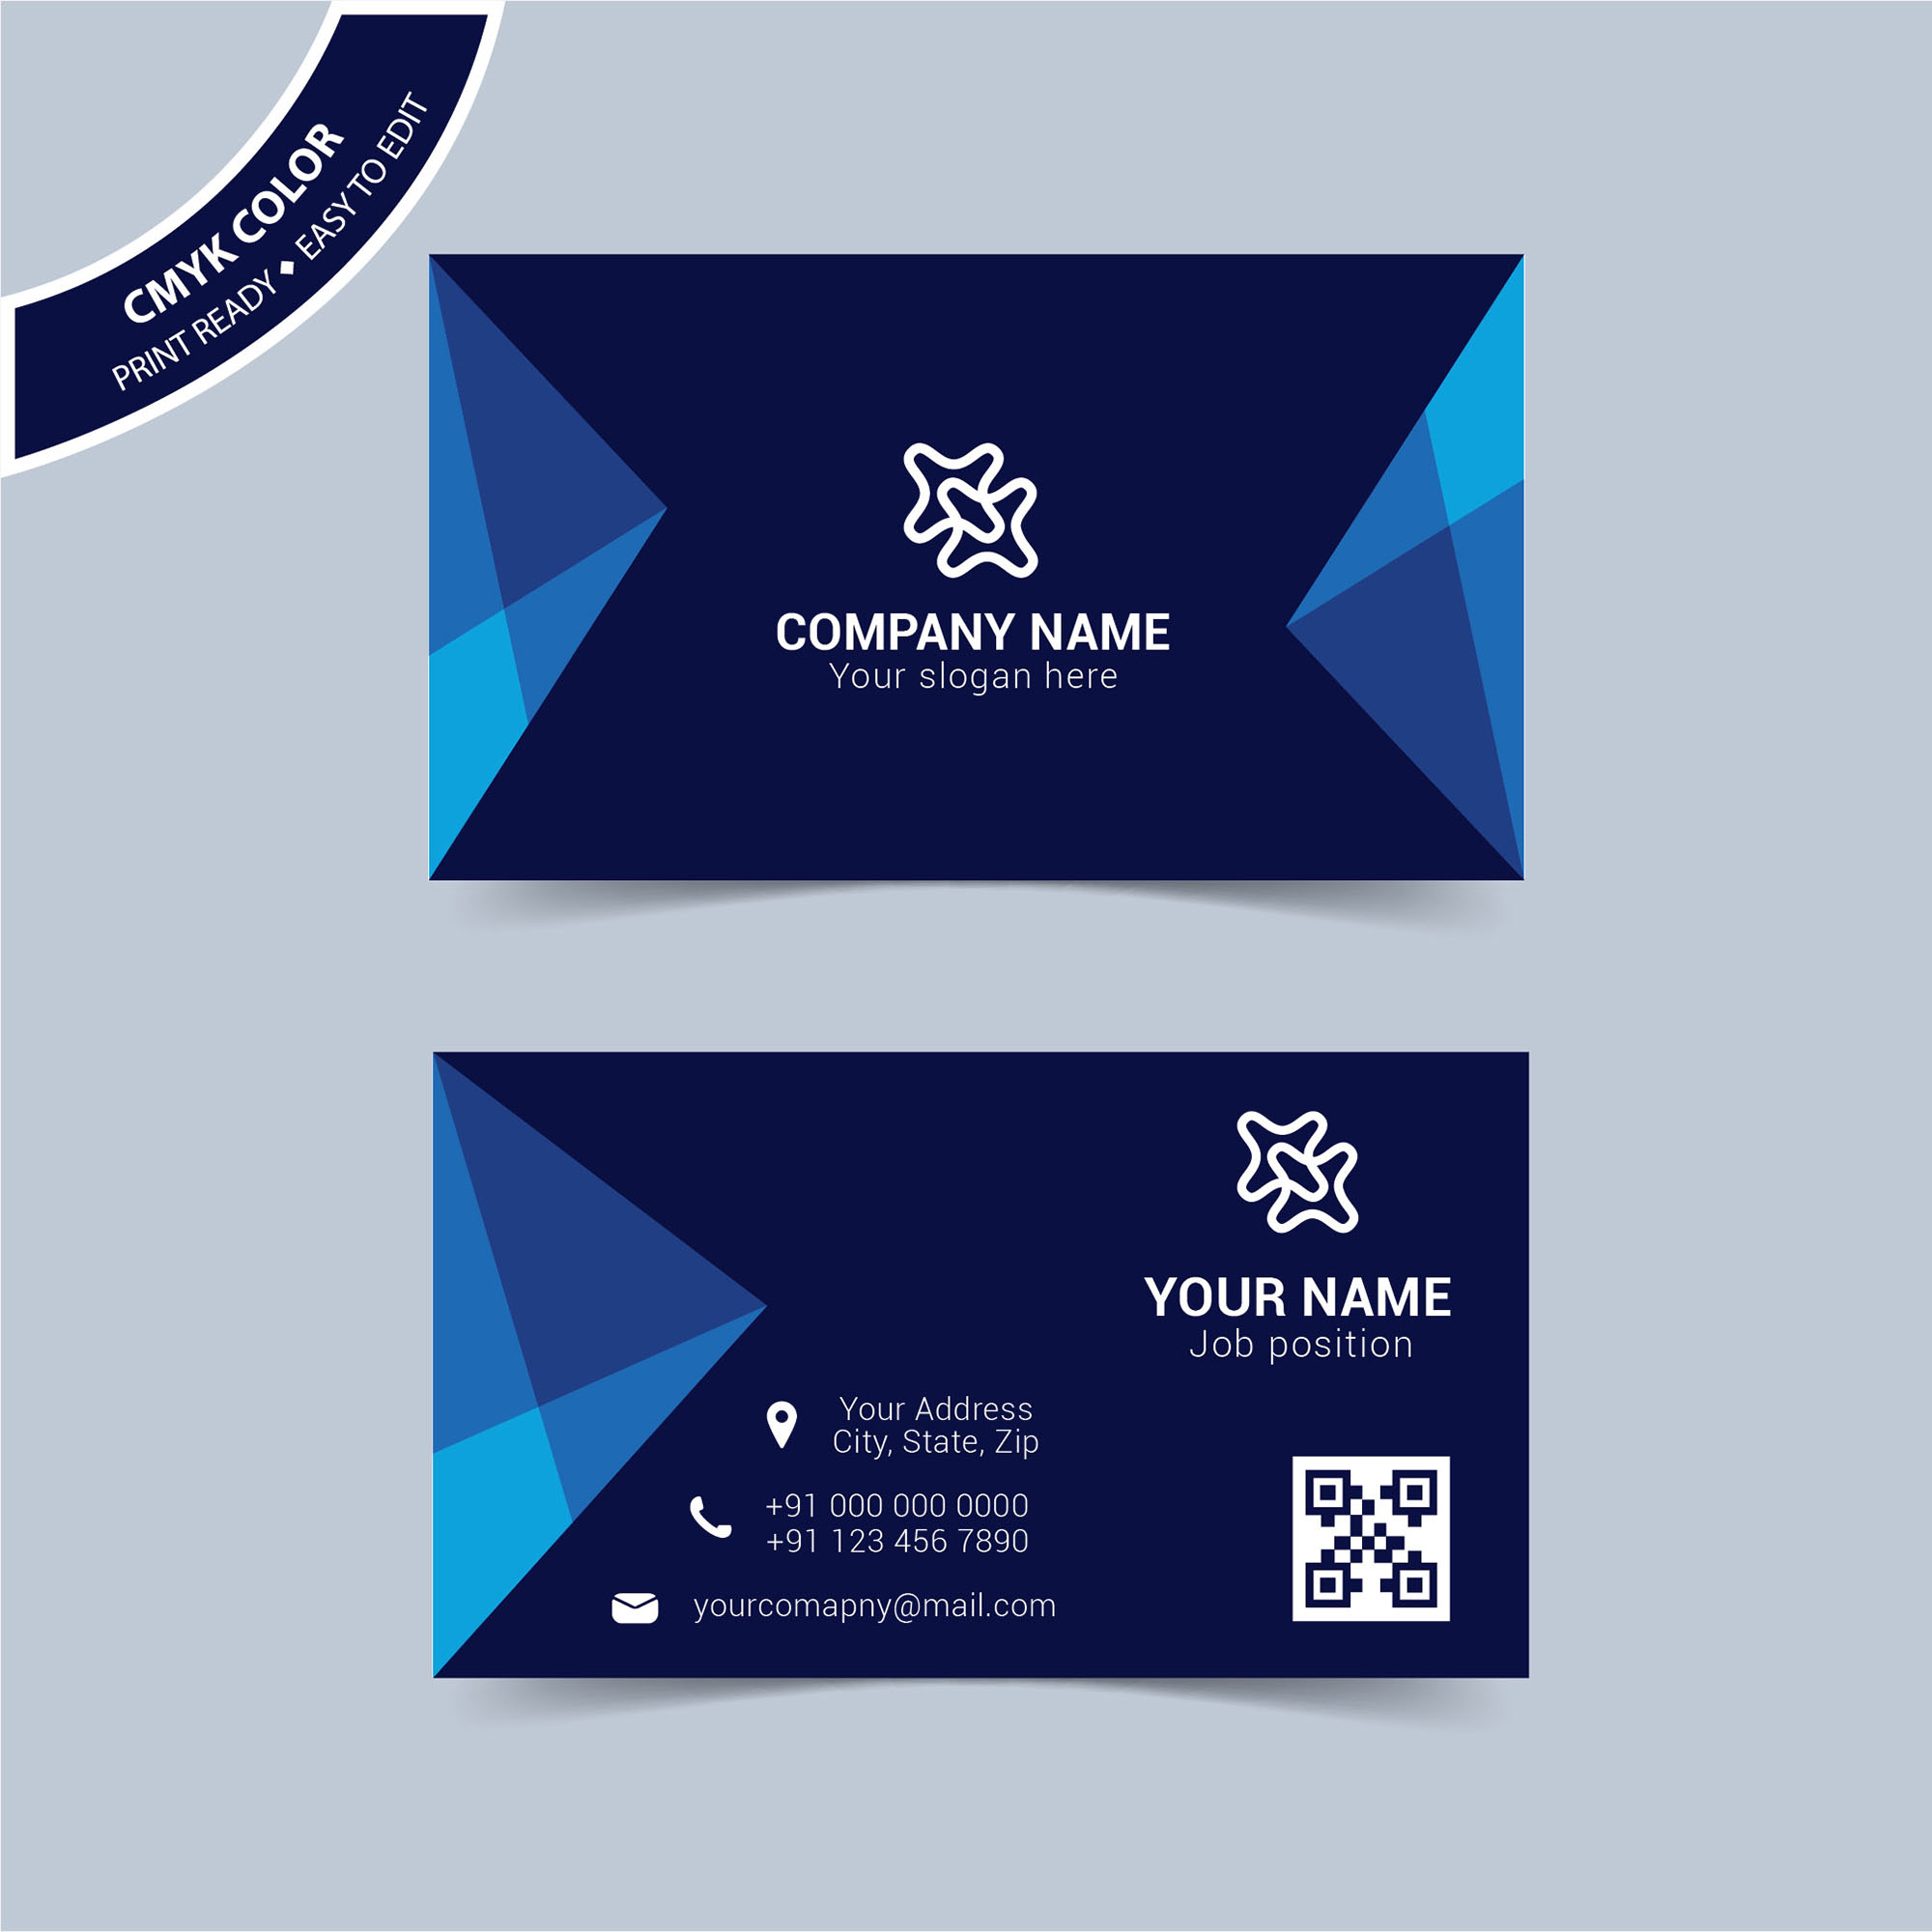 Modern blue business card template free download wisxi business card business cards business card design business card template design templates wajeb Gallery